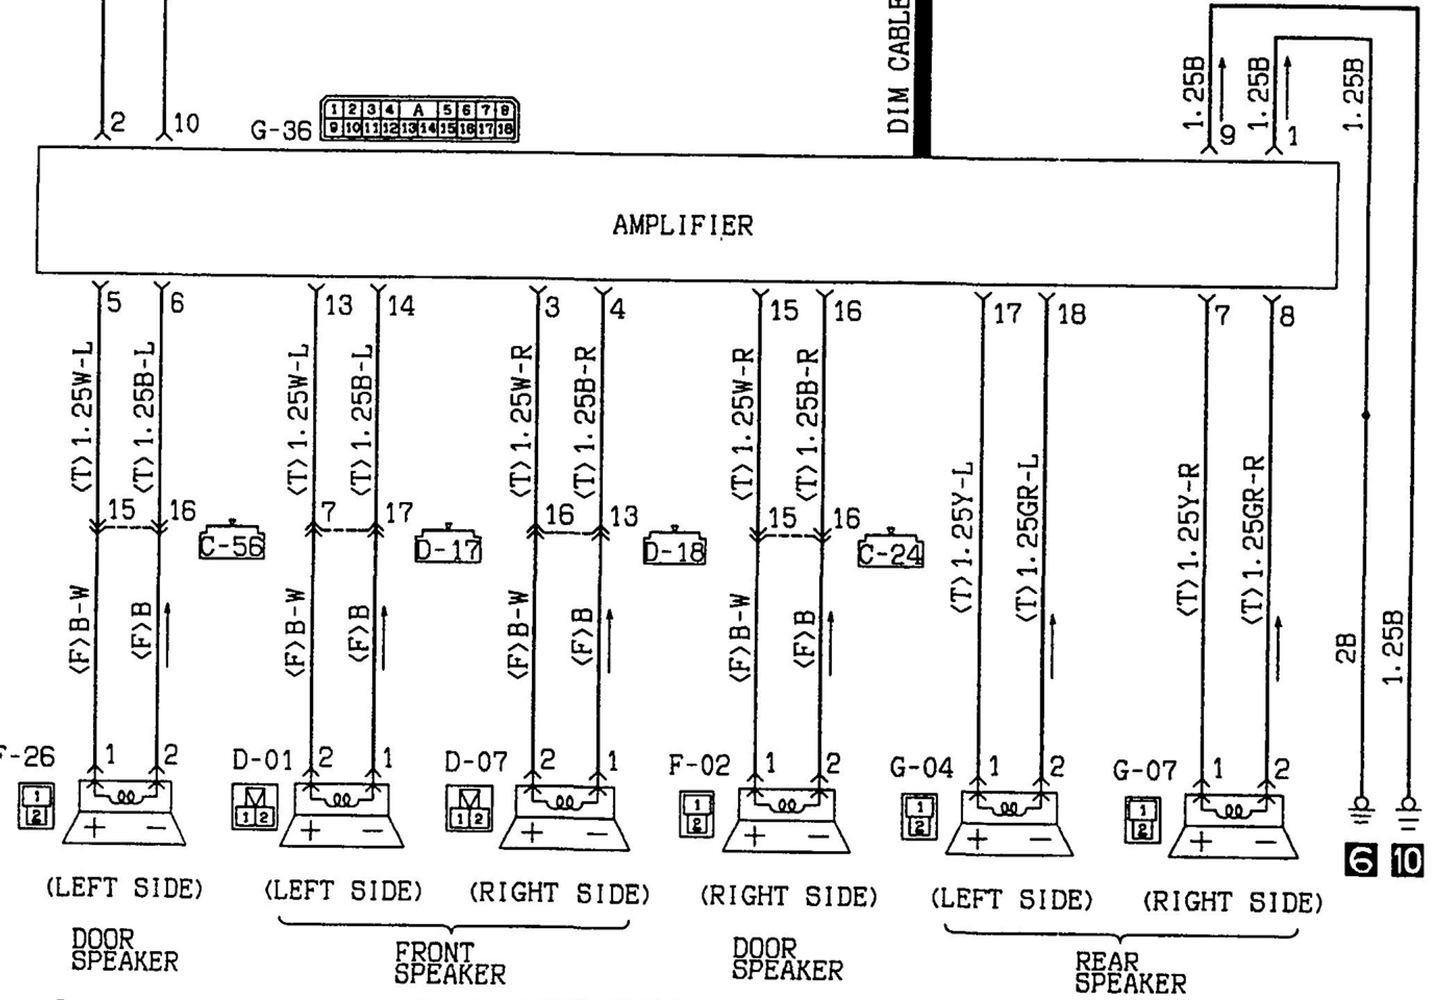 mitsubishi car stereo wiring diagram 1991 eclipse